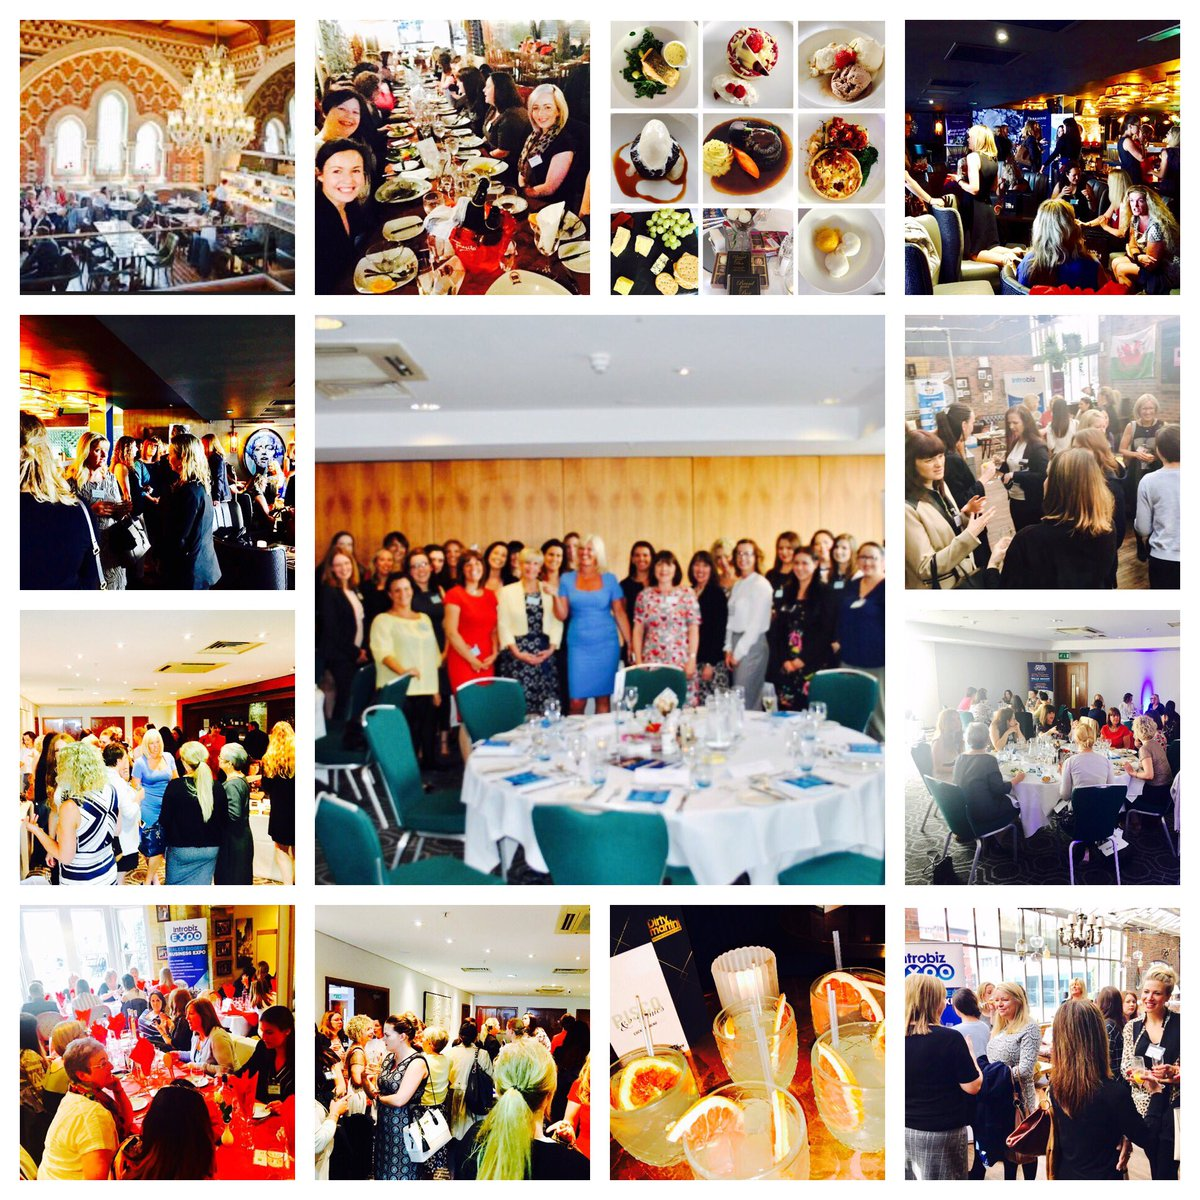 Have a fabulous time everyone attending today&#39;s #Introbiz Ladies #Networking Lunch Event @chapel1877bar #Cardiff  http://www. introbiz.co.uk/cardiff-busine ss-networking-events-wales/diary/ &nbsp; … <br>http://pic.twitter.com/rnHdTpRTtr